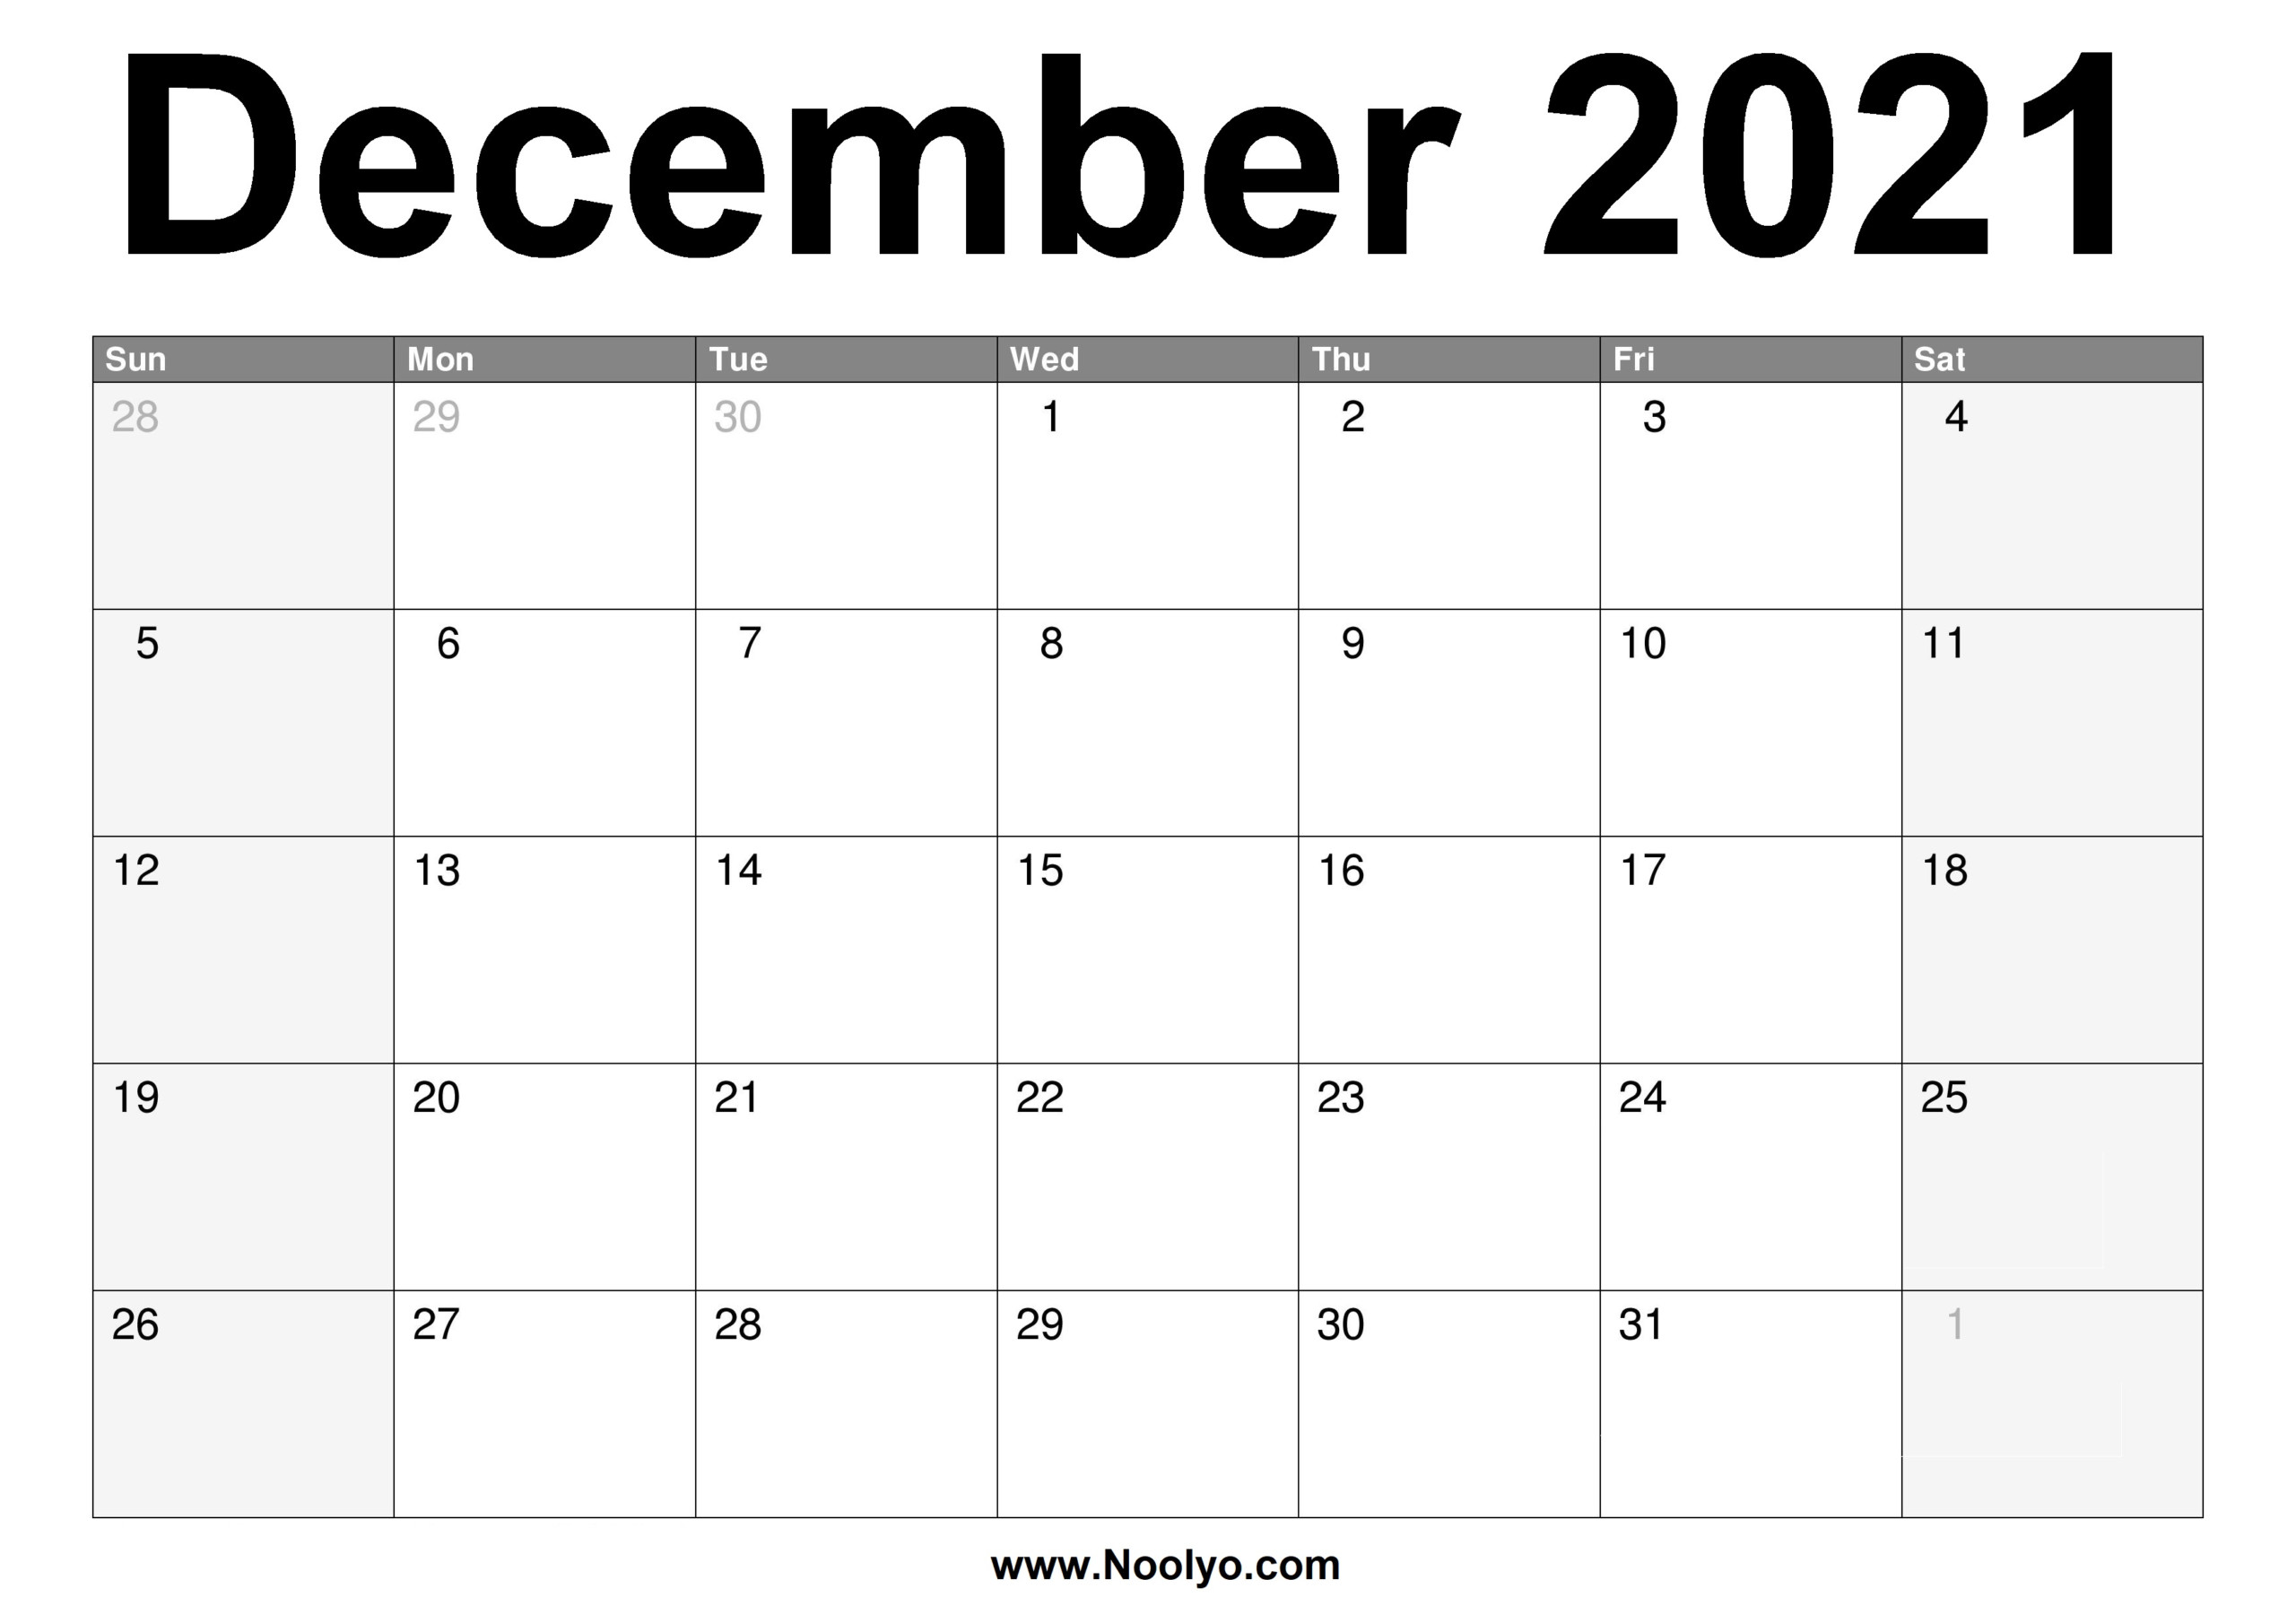 December 2021 Calendar Printable – Free Download – Noolyo